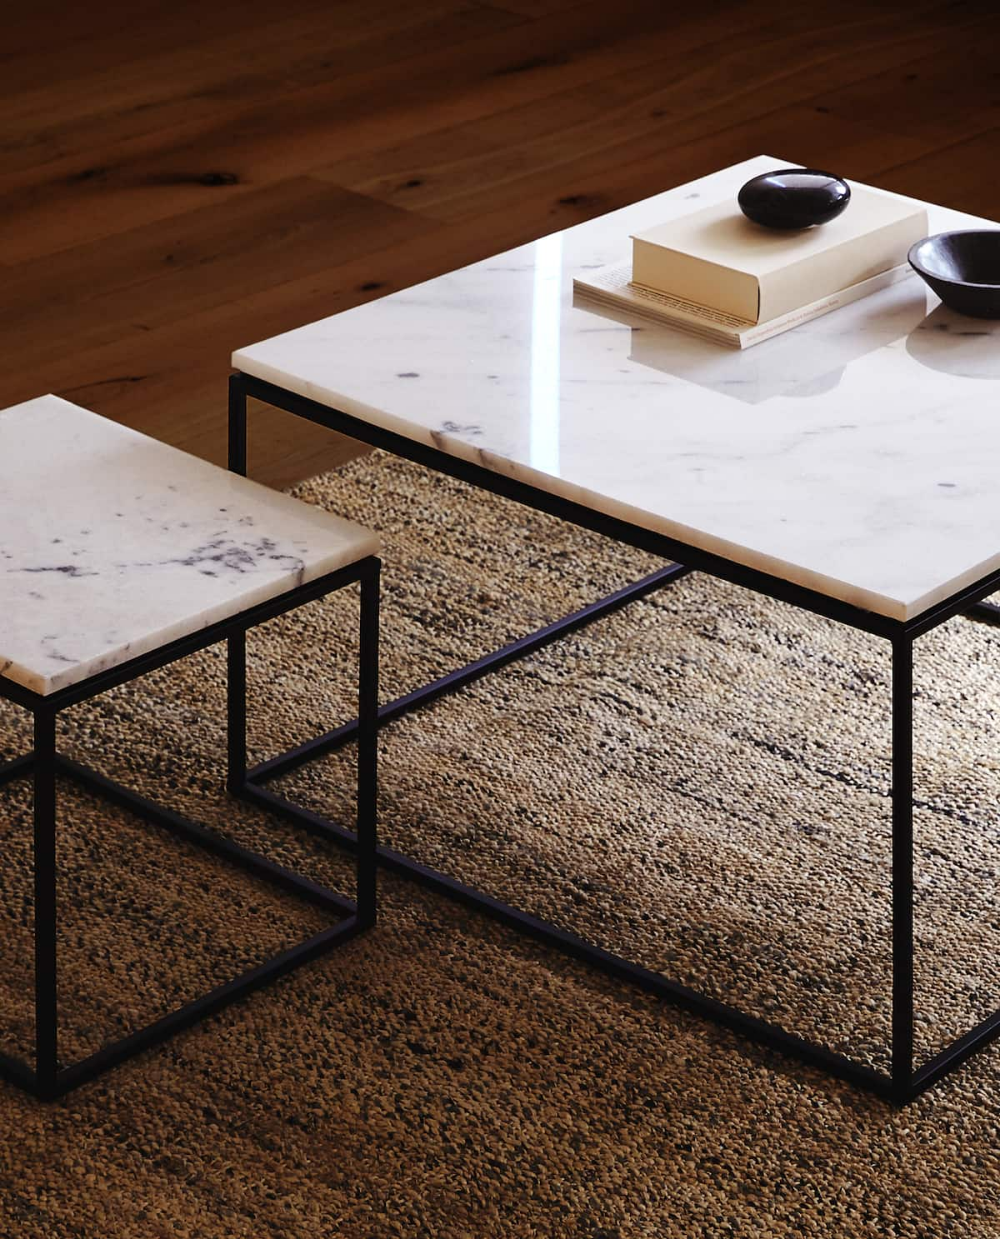 Image 6 Of The Product Black Marble Table Black Marble Coffee Table Marble Coffee Table Marble Living Room Table [ 1239 x 1000 Pixel ]